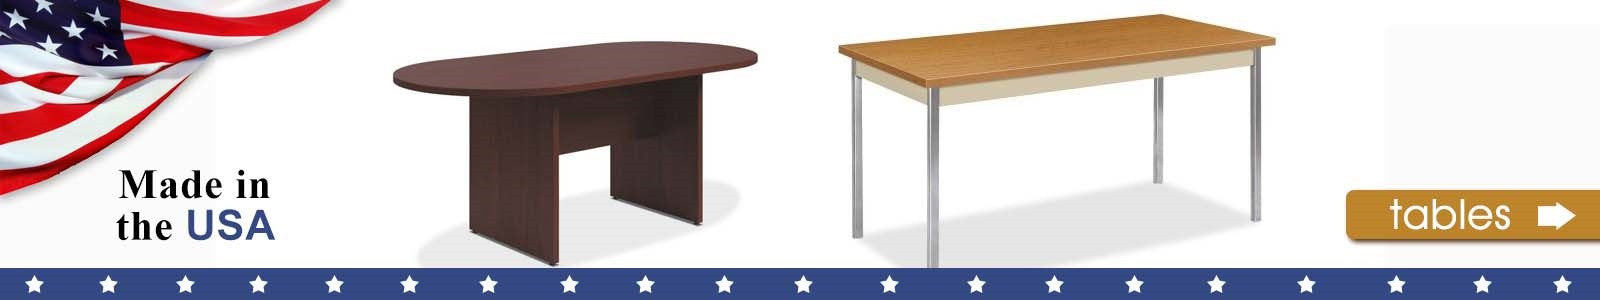 HON Table Options Made in the USA